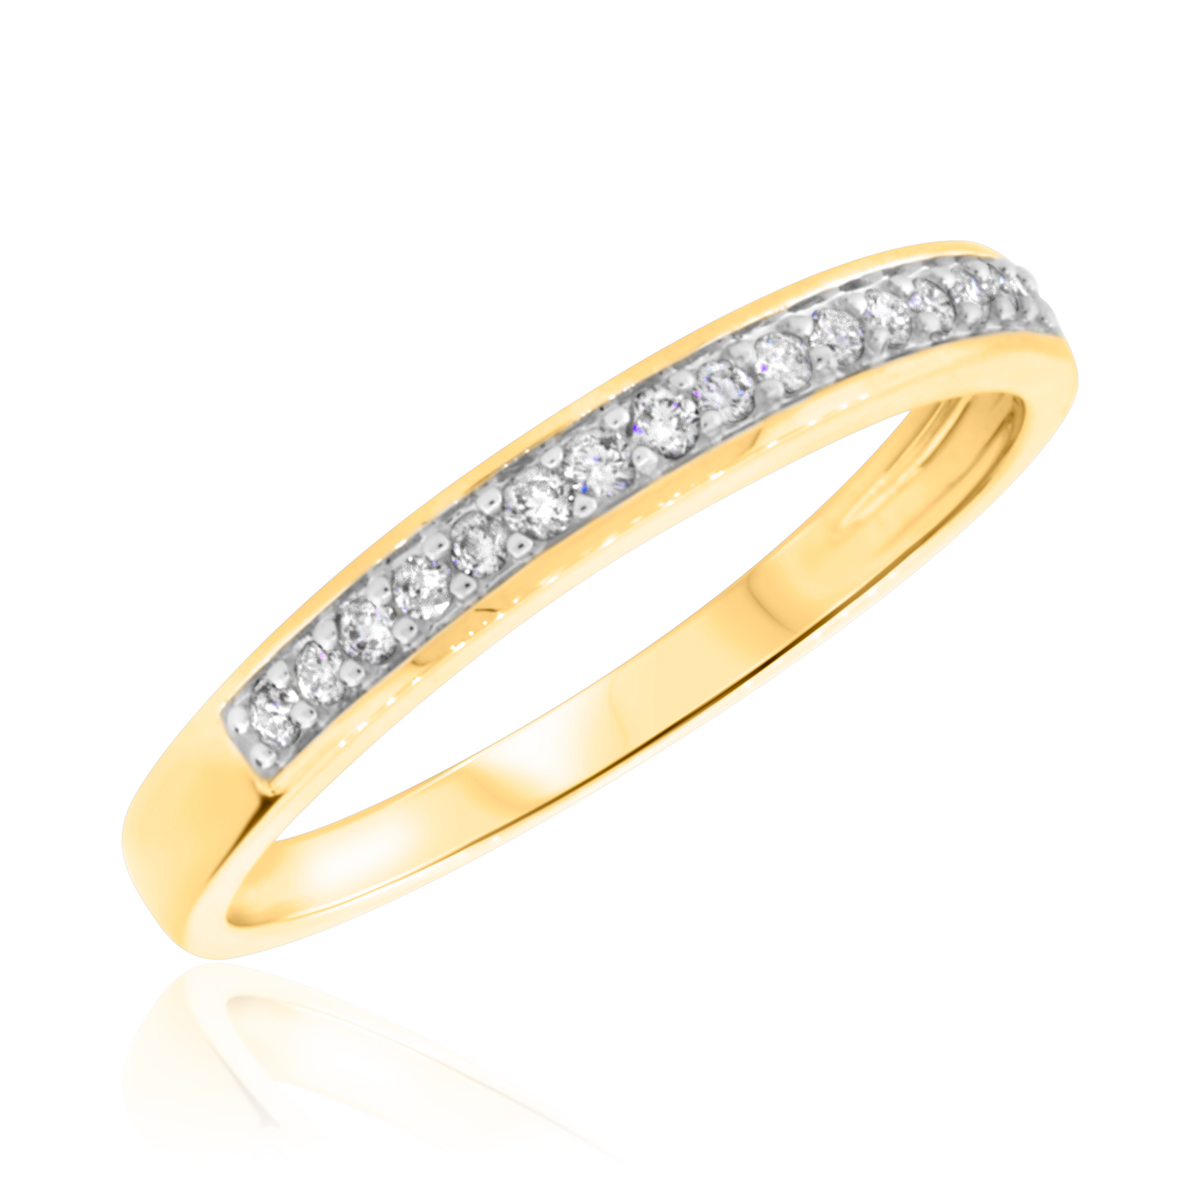 1/7 Carat T.W. Round Cut Diamond Ladies Wedding Band 14K Yellow Gold